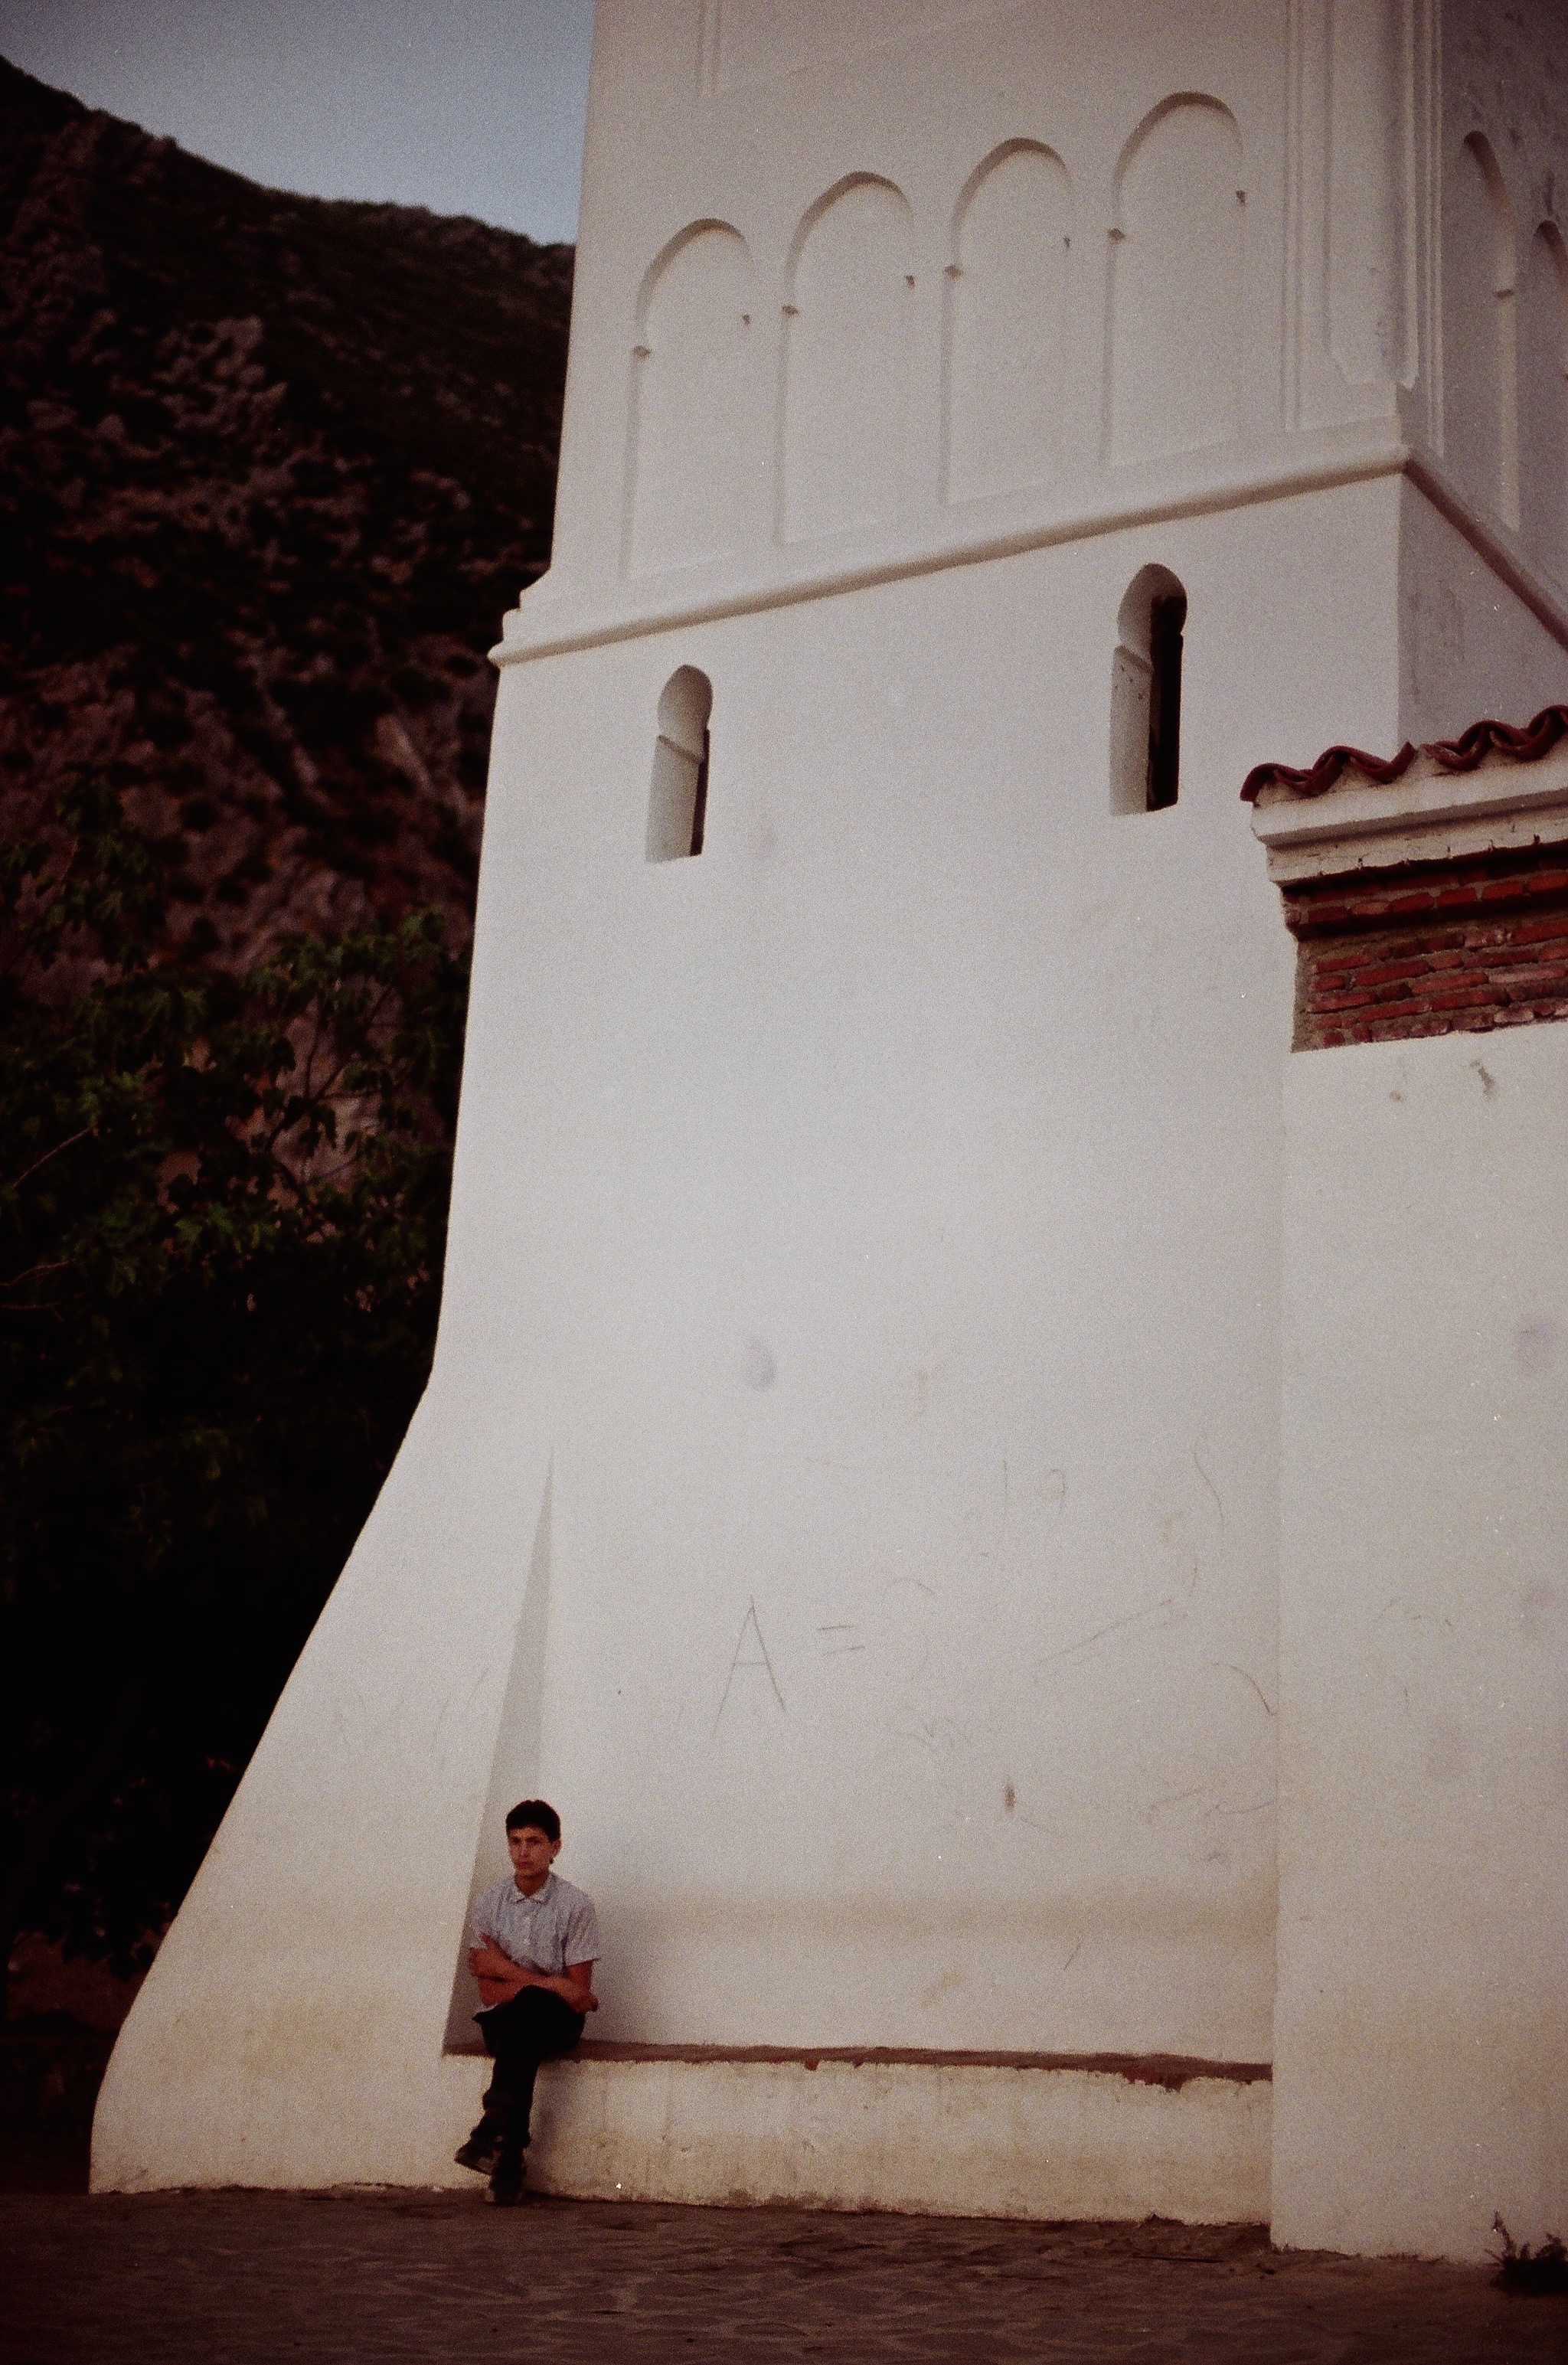 Tranquility on a Mosque, taken in Chefchaouen, Morocco